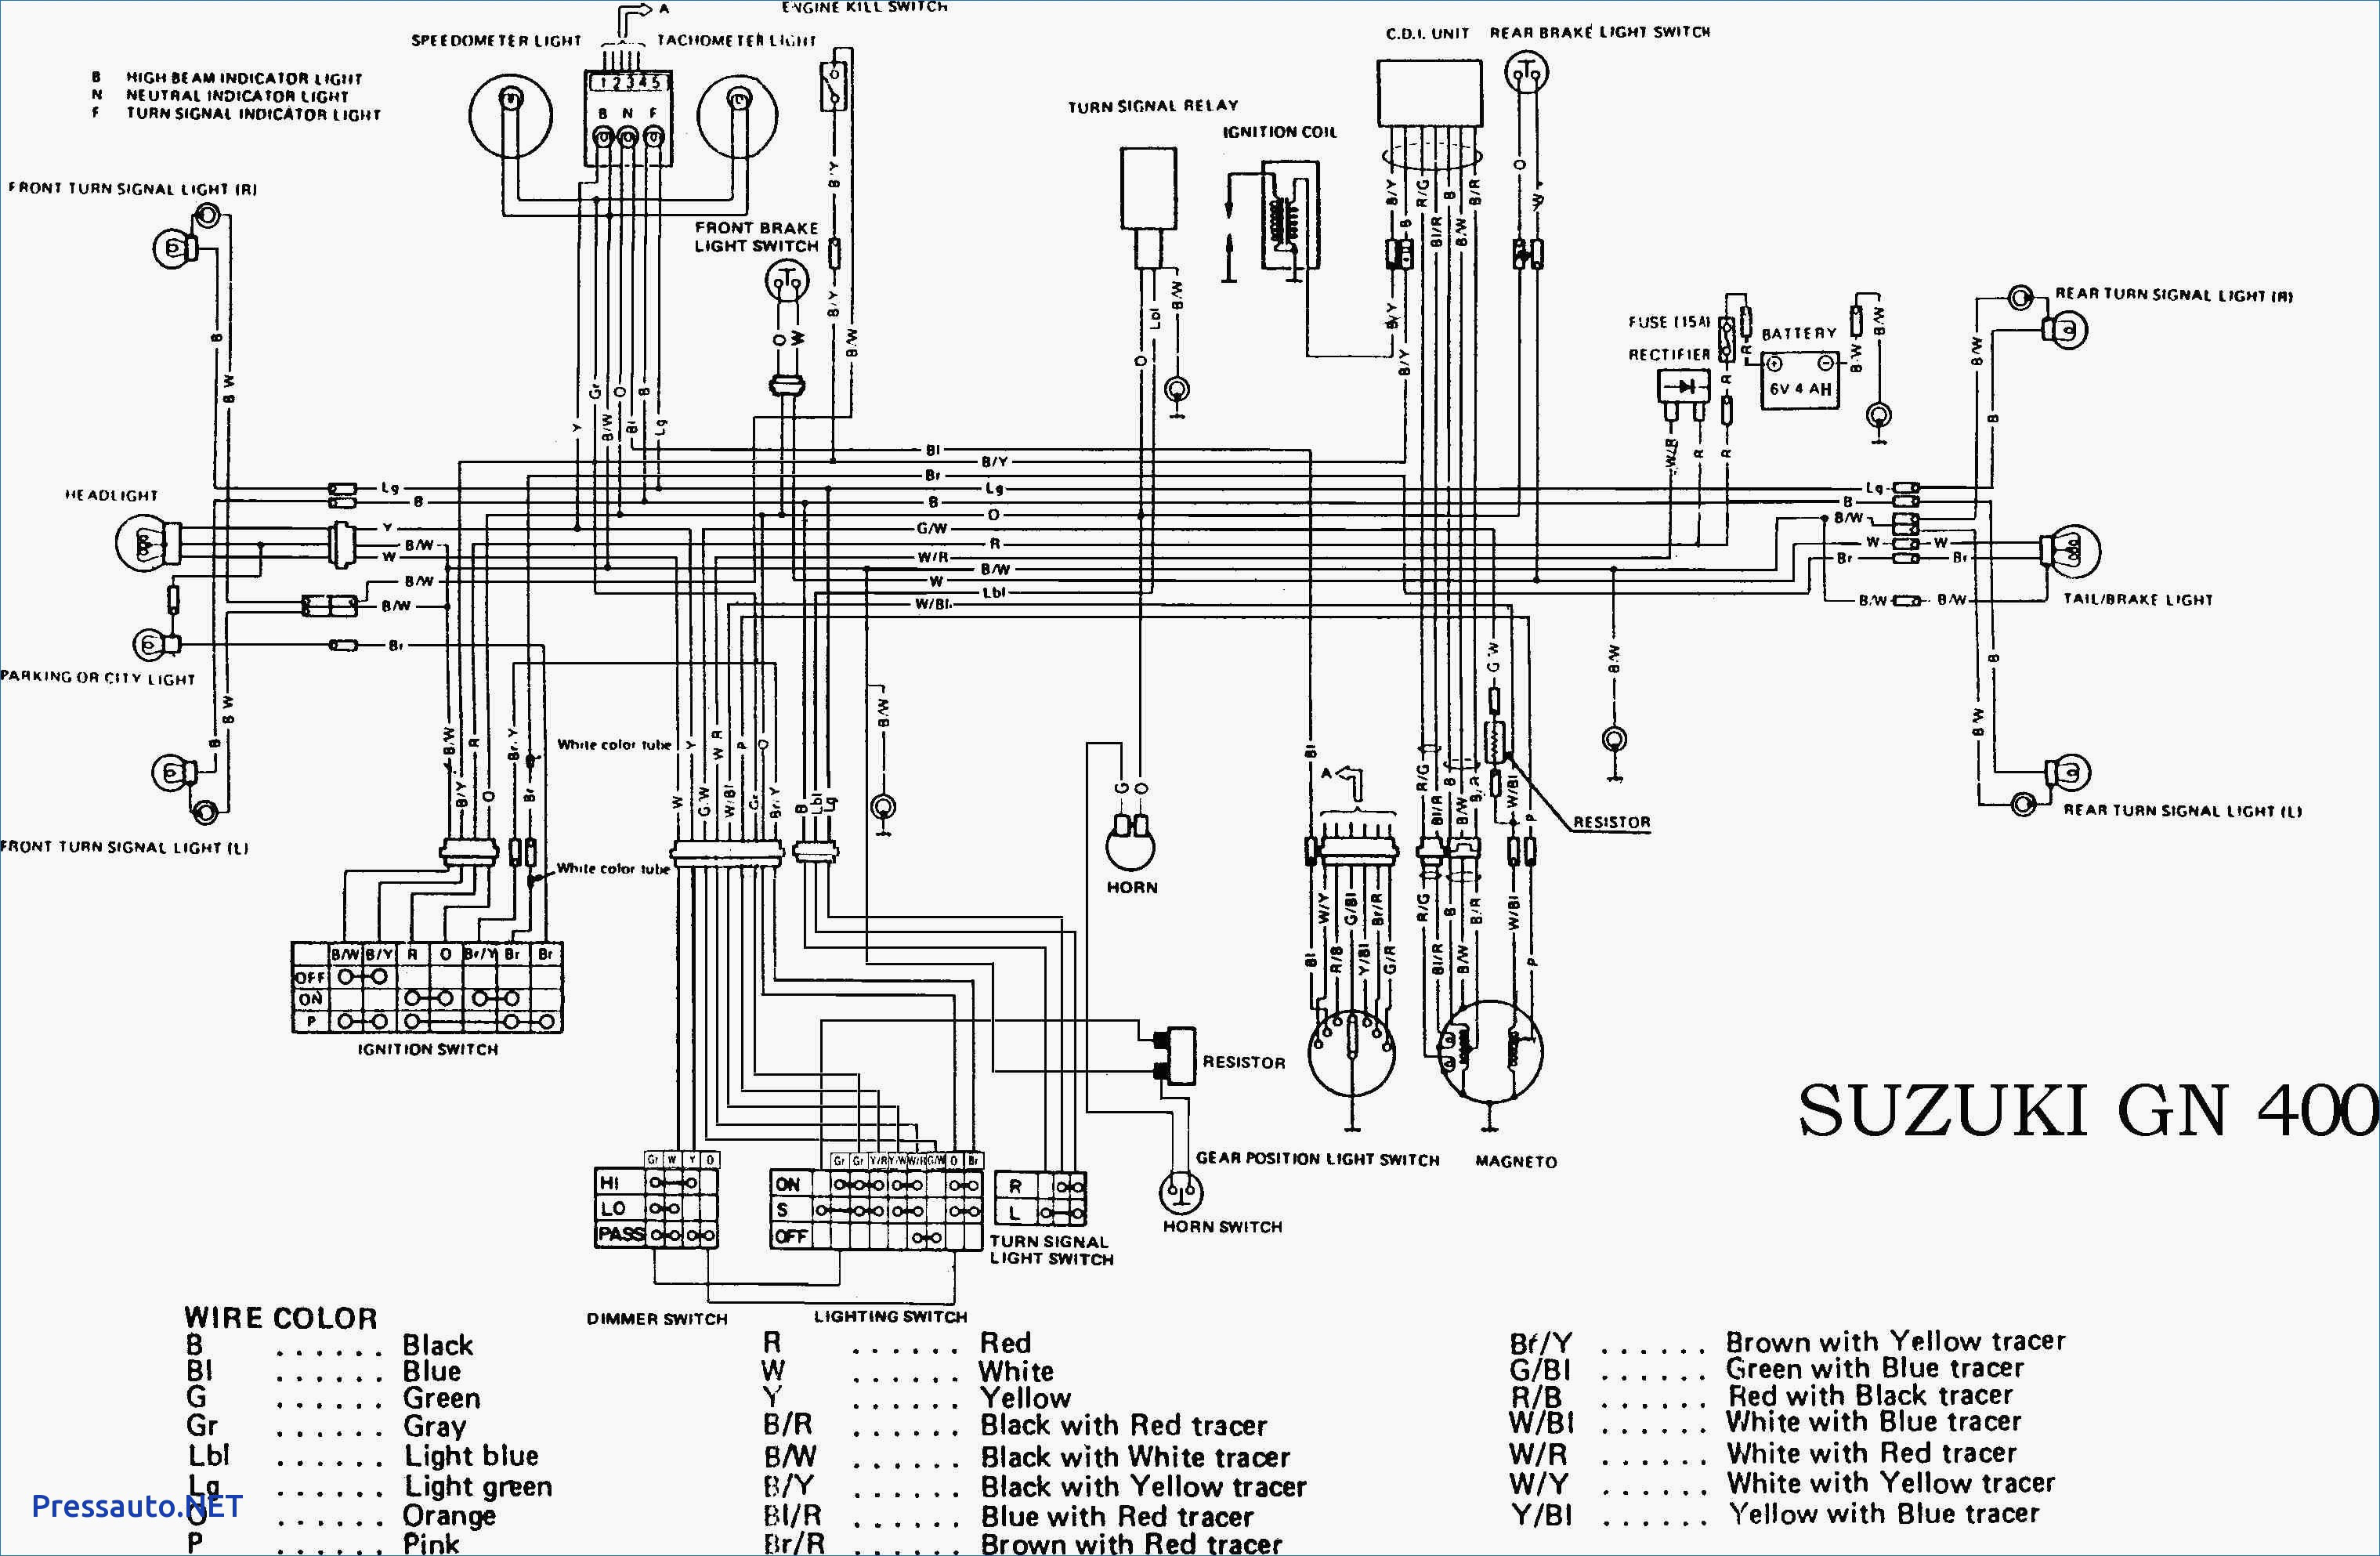 400w hps ballast wiring diagram Download-Wiring Diagram 400w Hps Ballast Wiringdiagram Lovely 18 4-b